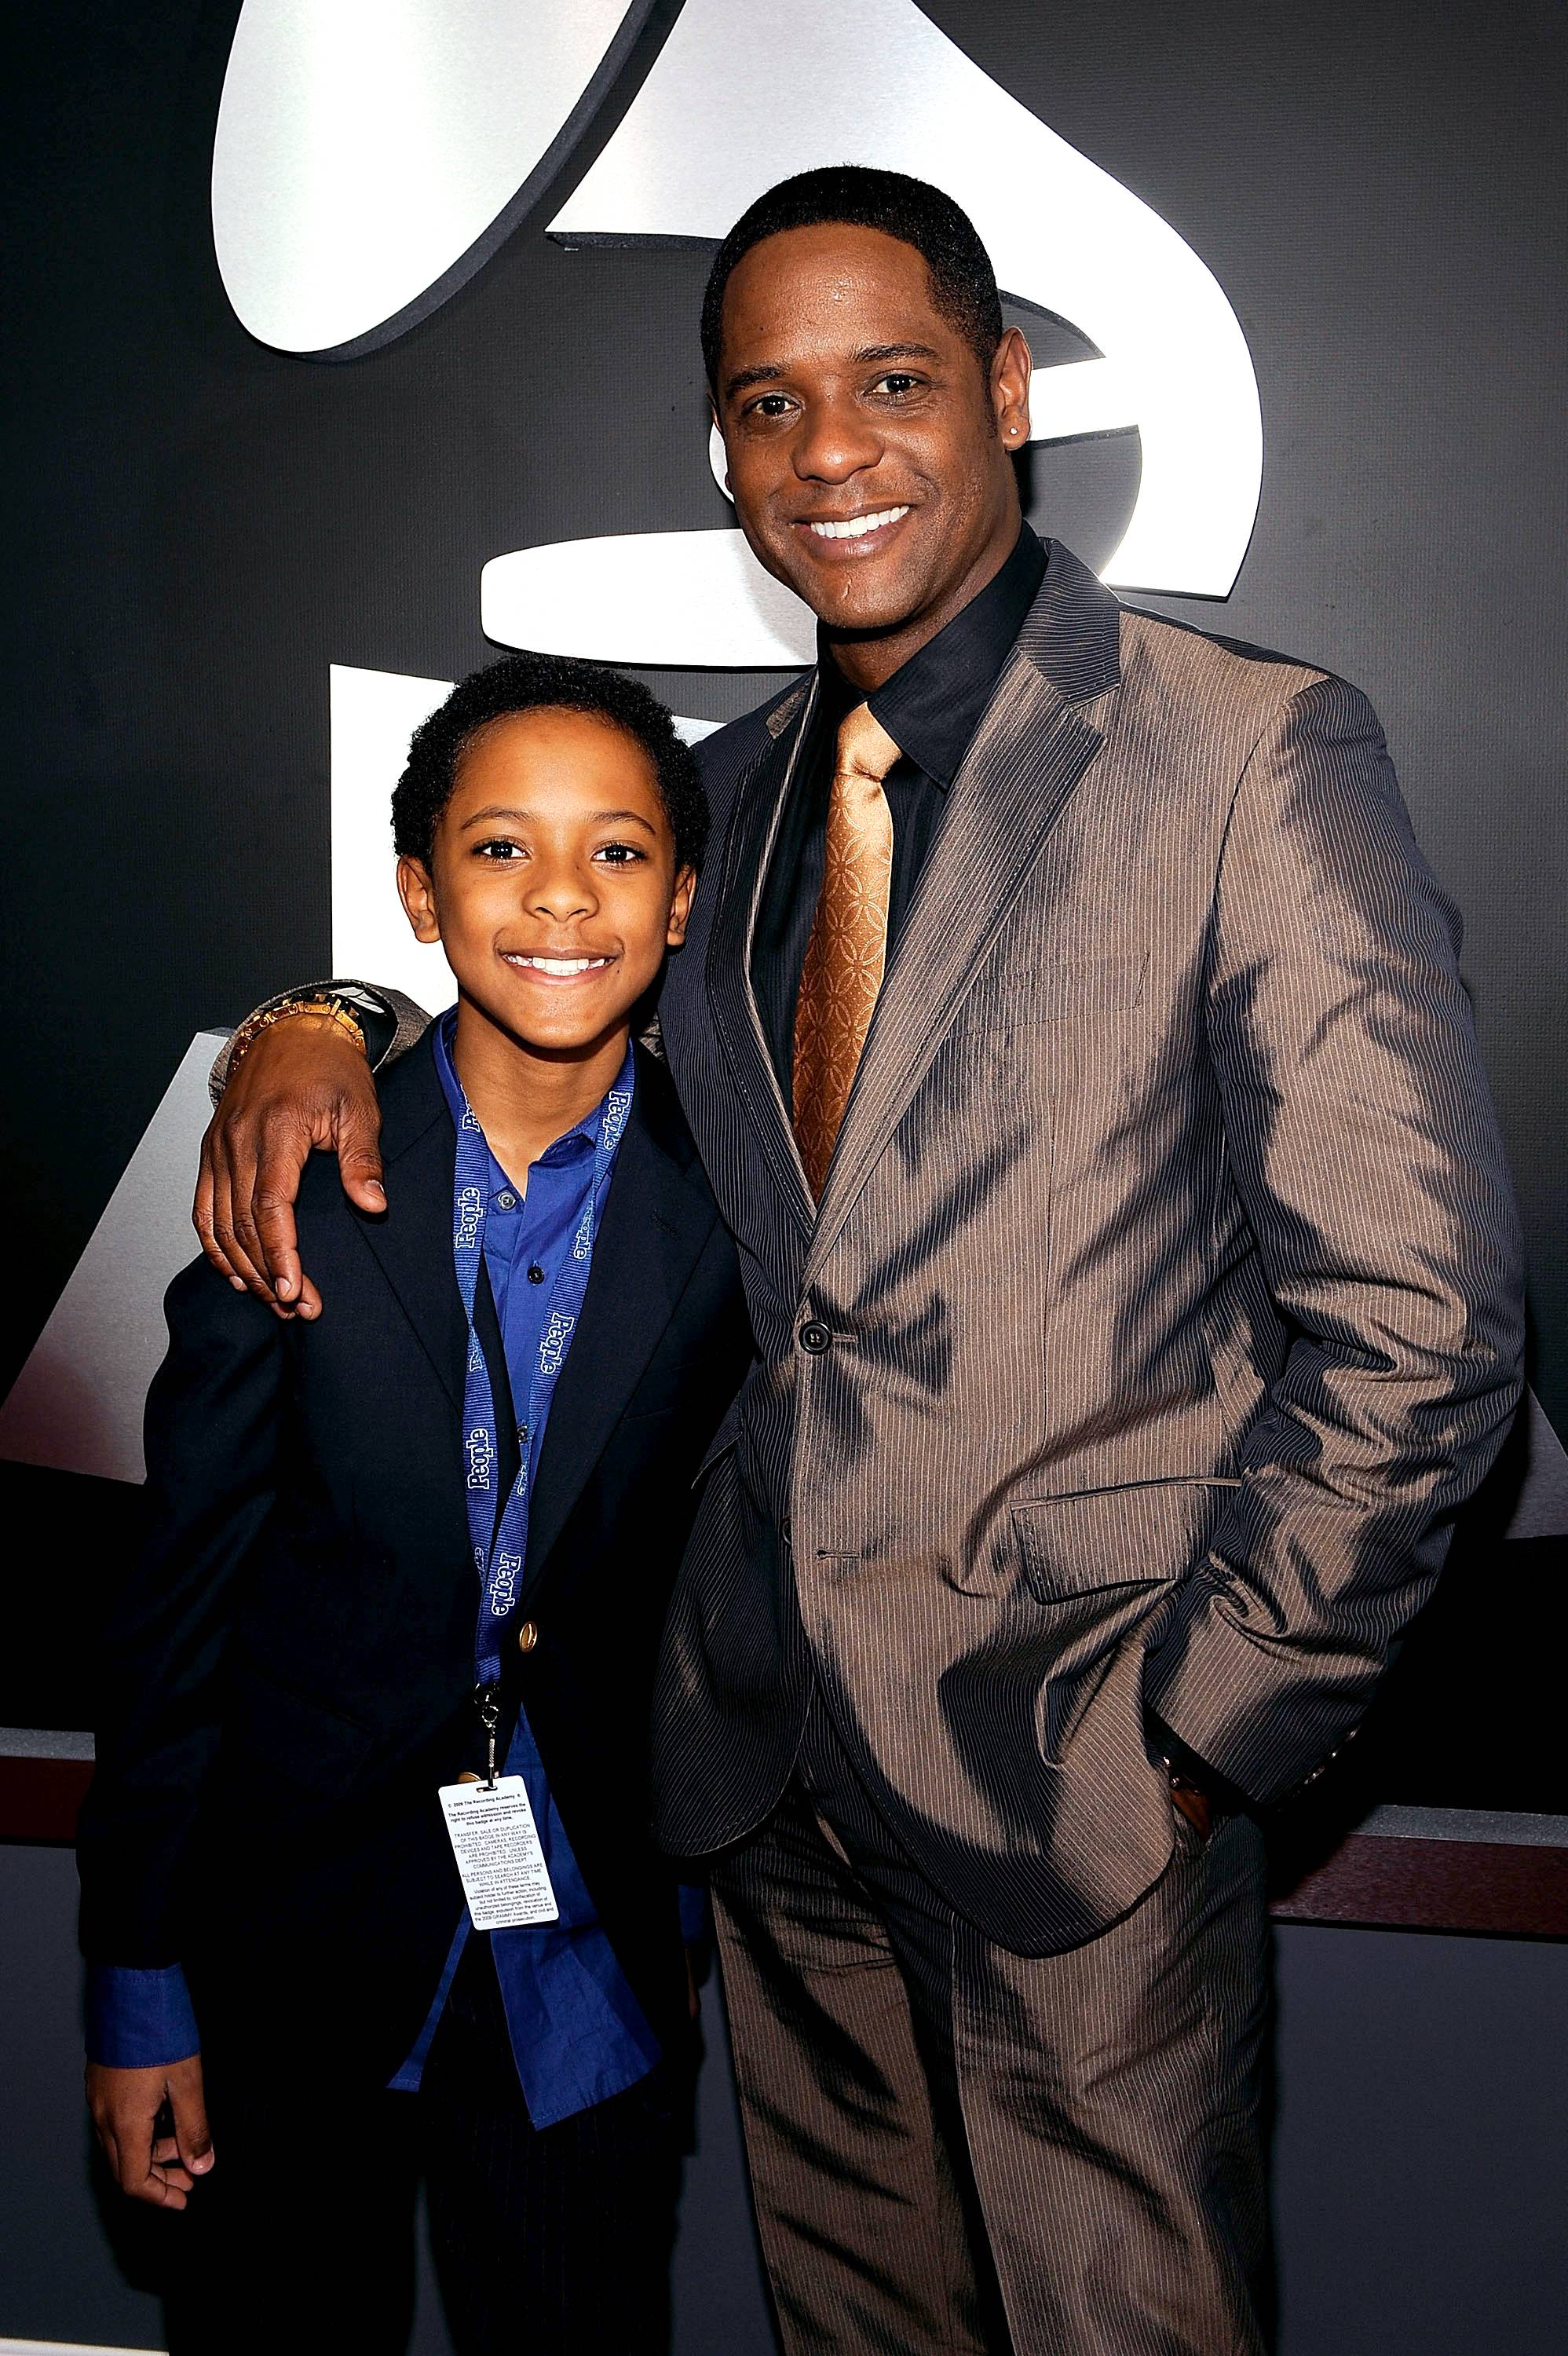 """Blair Underwood - """"Tonight, Daddy won't read you a story?you can watch him in a story""""?Blair Underwood with son, Paris. He also has a daughter, Brielle.(Photo: Larry Busacca/Getty Images)"""